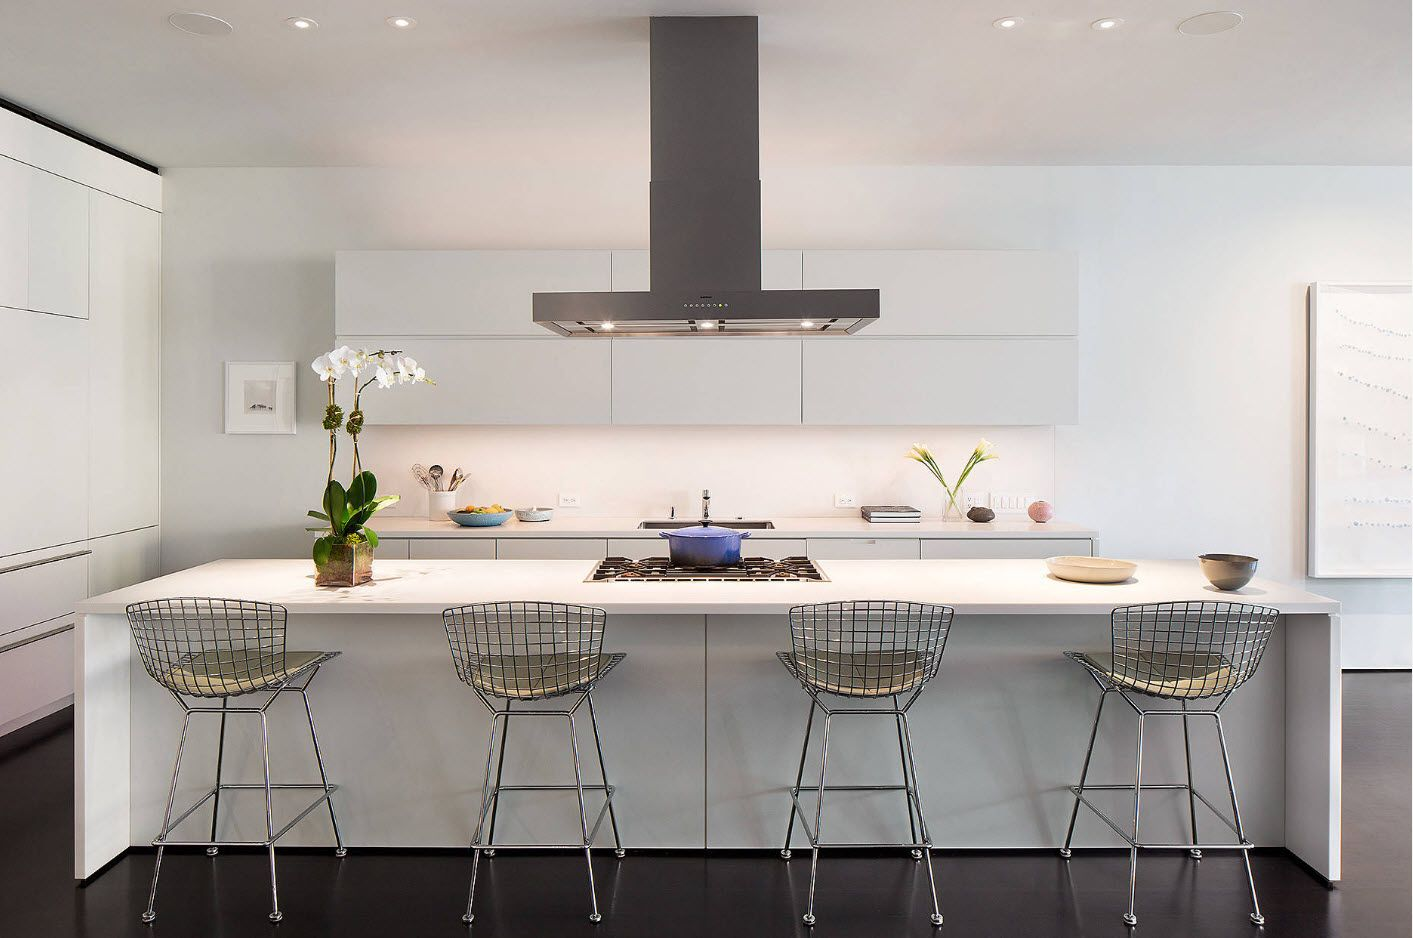 Low hi-tech extractor hood with built-in lighting and neat white kitchen atmosphere with metal framed stools